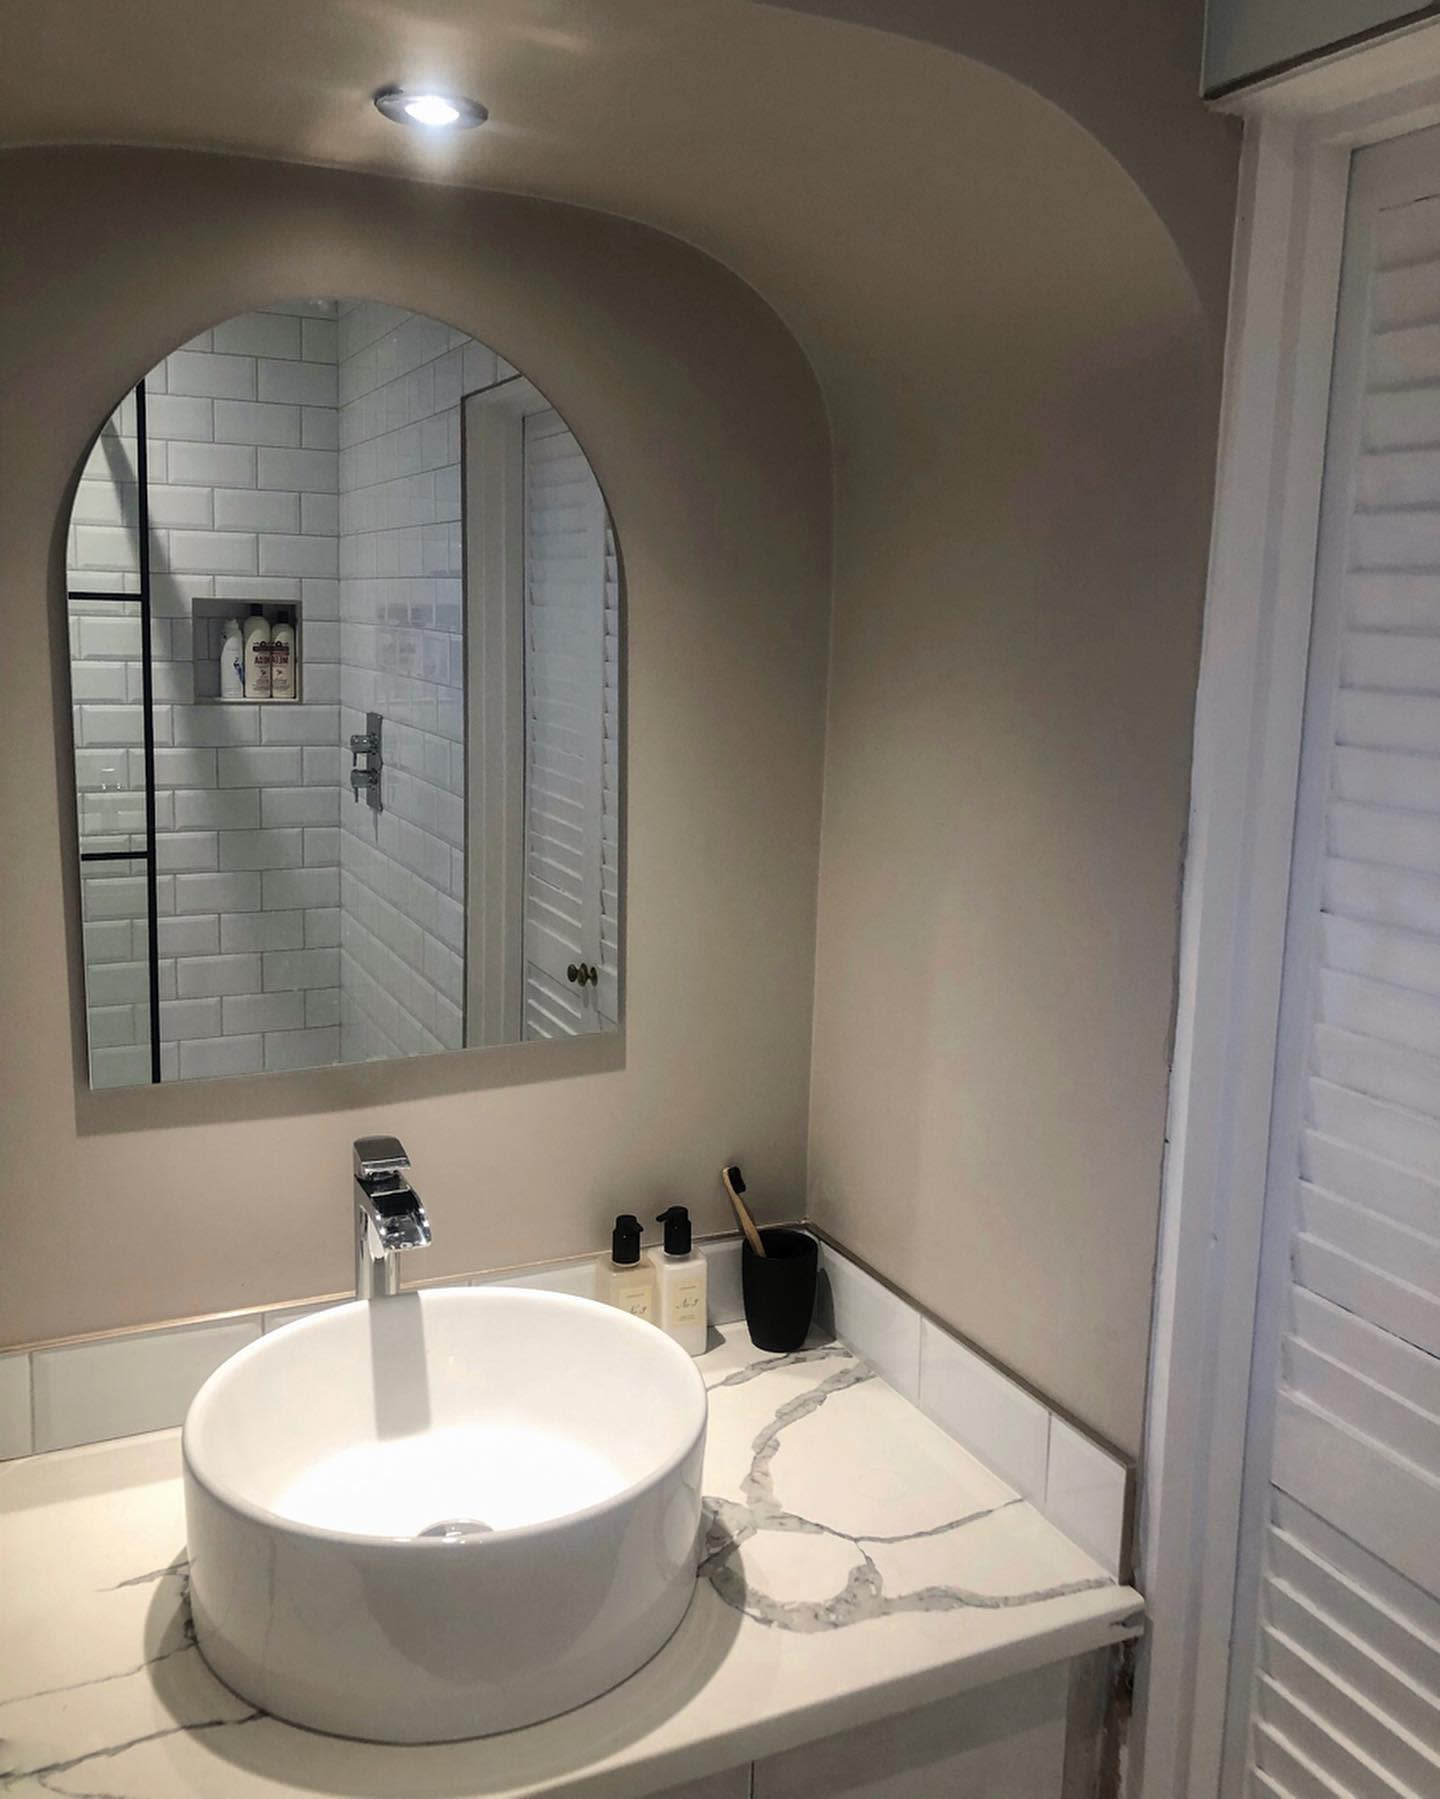 Round Bathroom Sink Ideas -house.by.the.woods